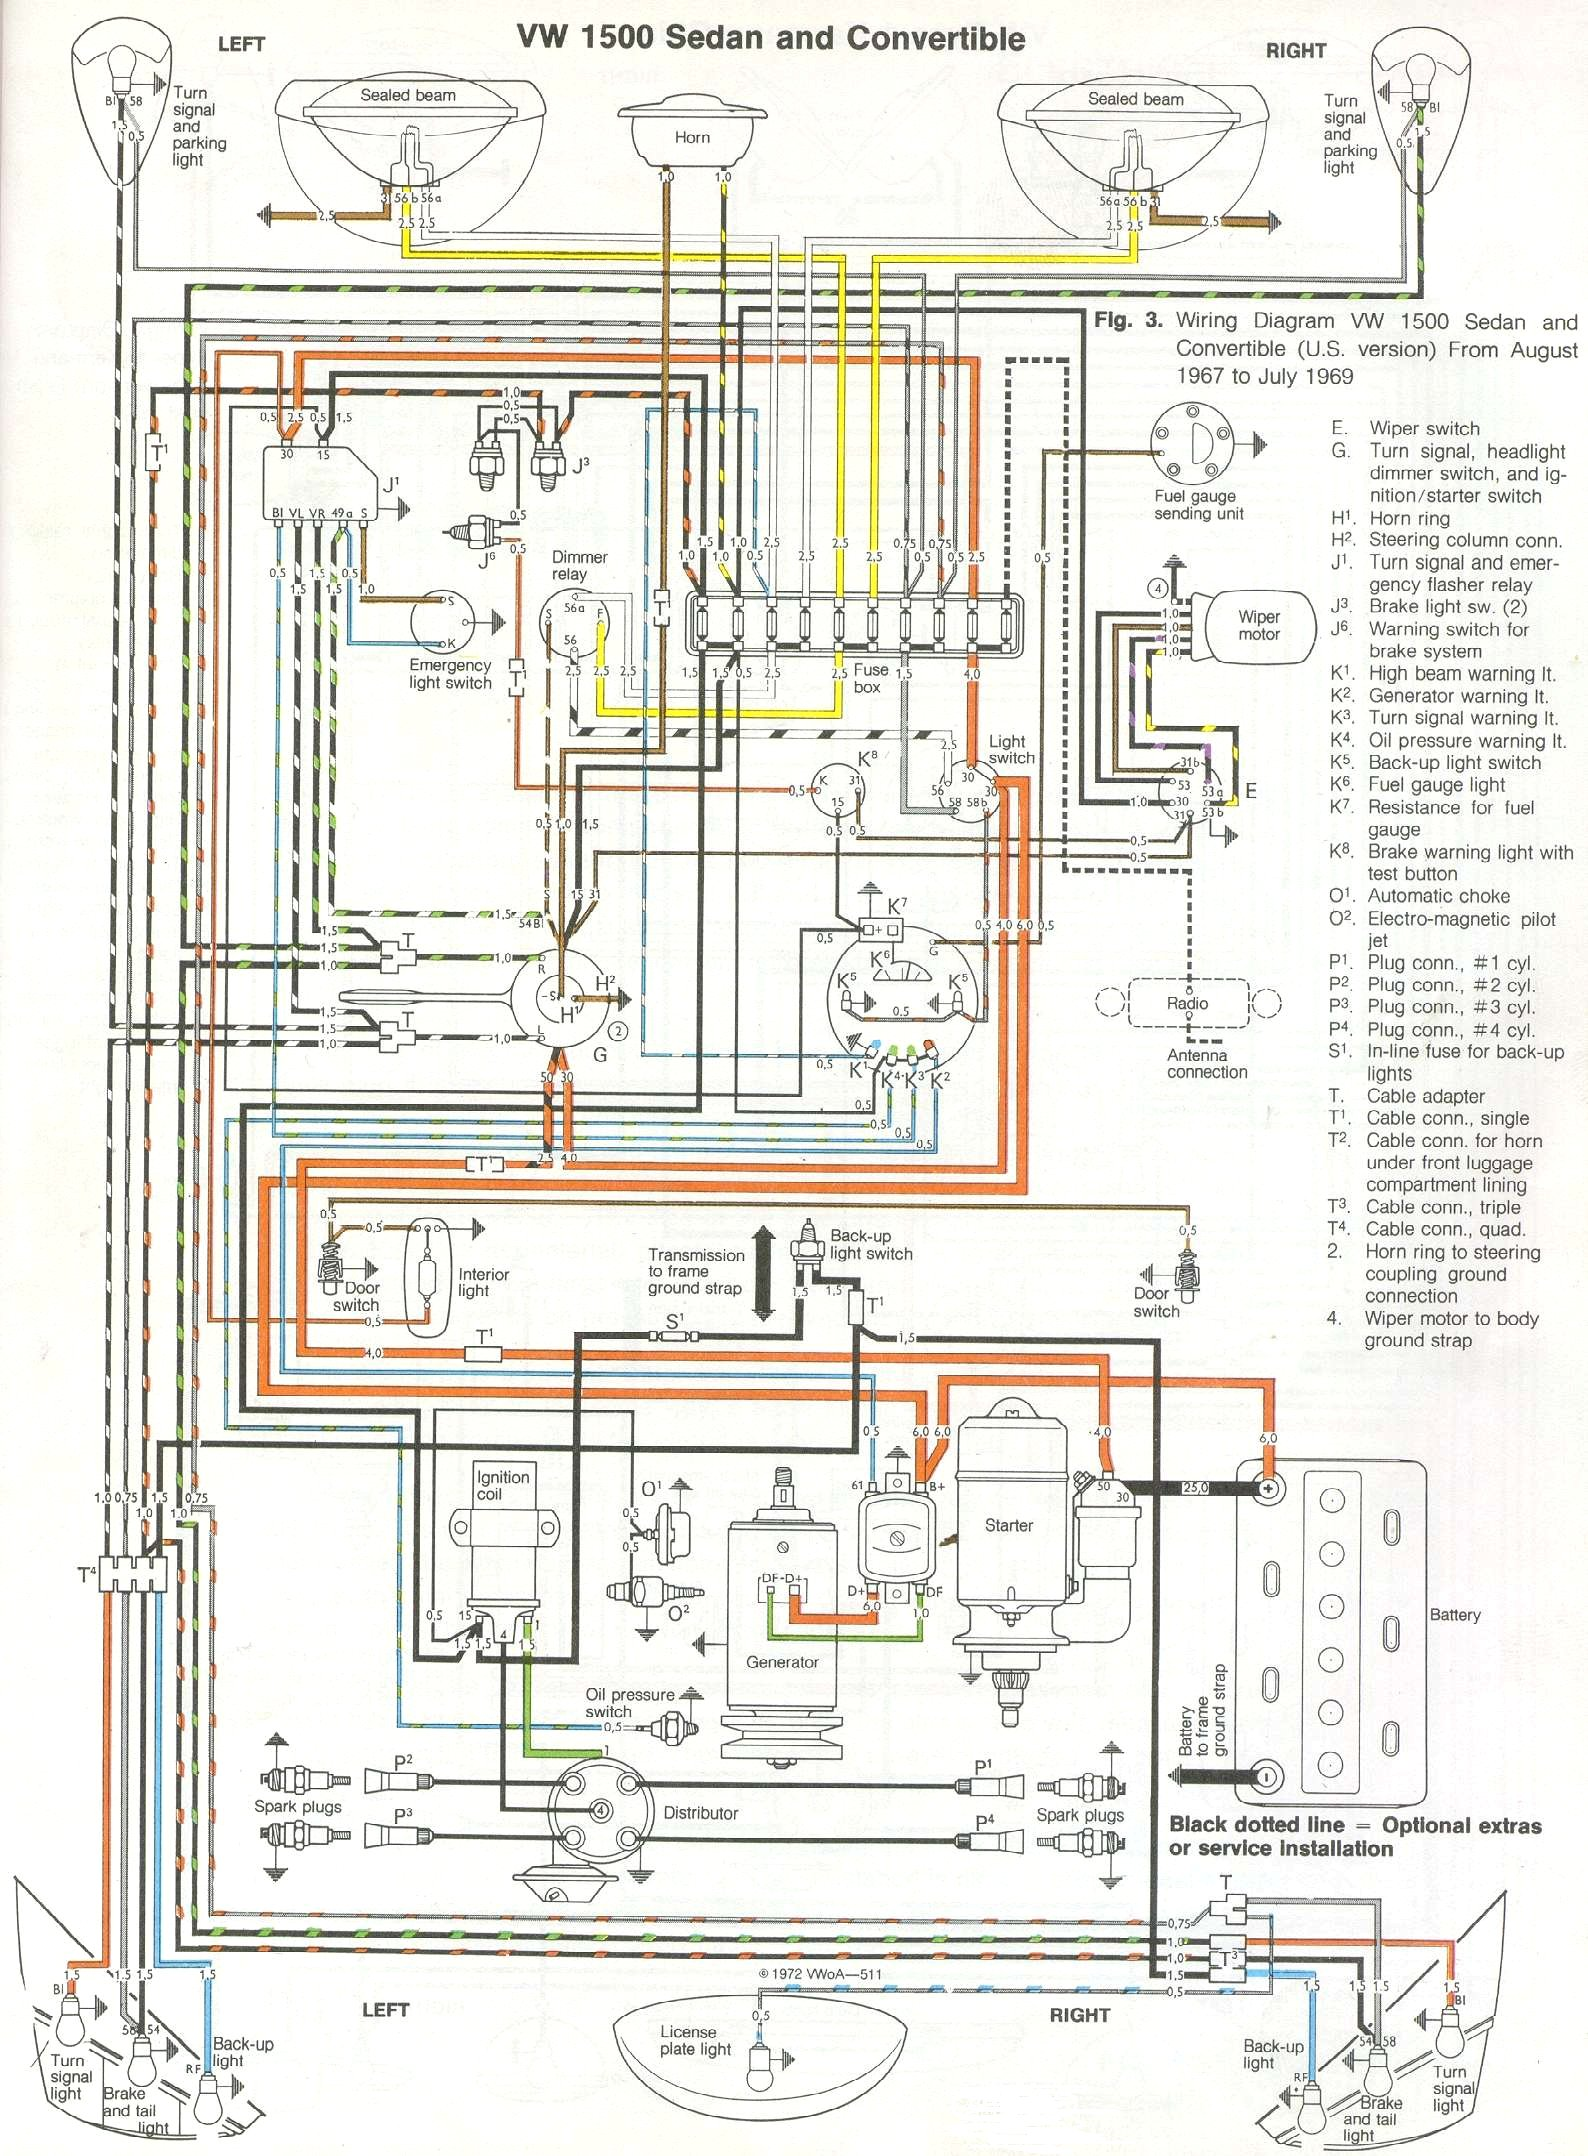 Vw Wiring Harness Diagram Ask Answer Diagrams For 2006 Jetta Door 1969 71 Beetle Thegoldenbug Com Rh 2001 Passat Radio 1971 Super